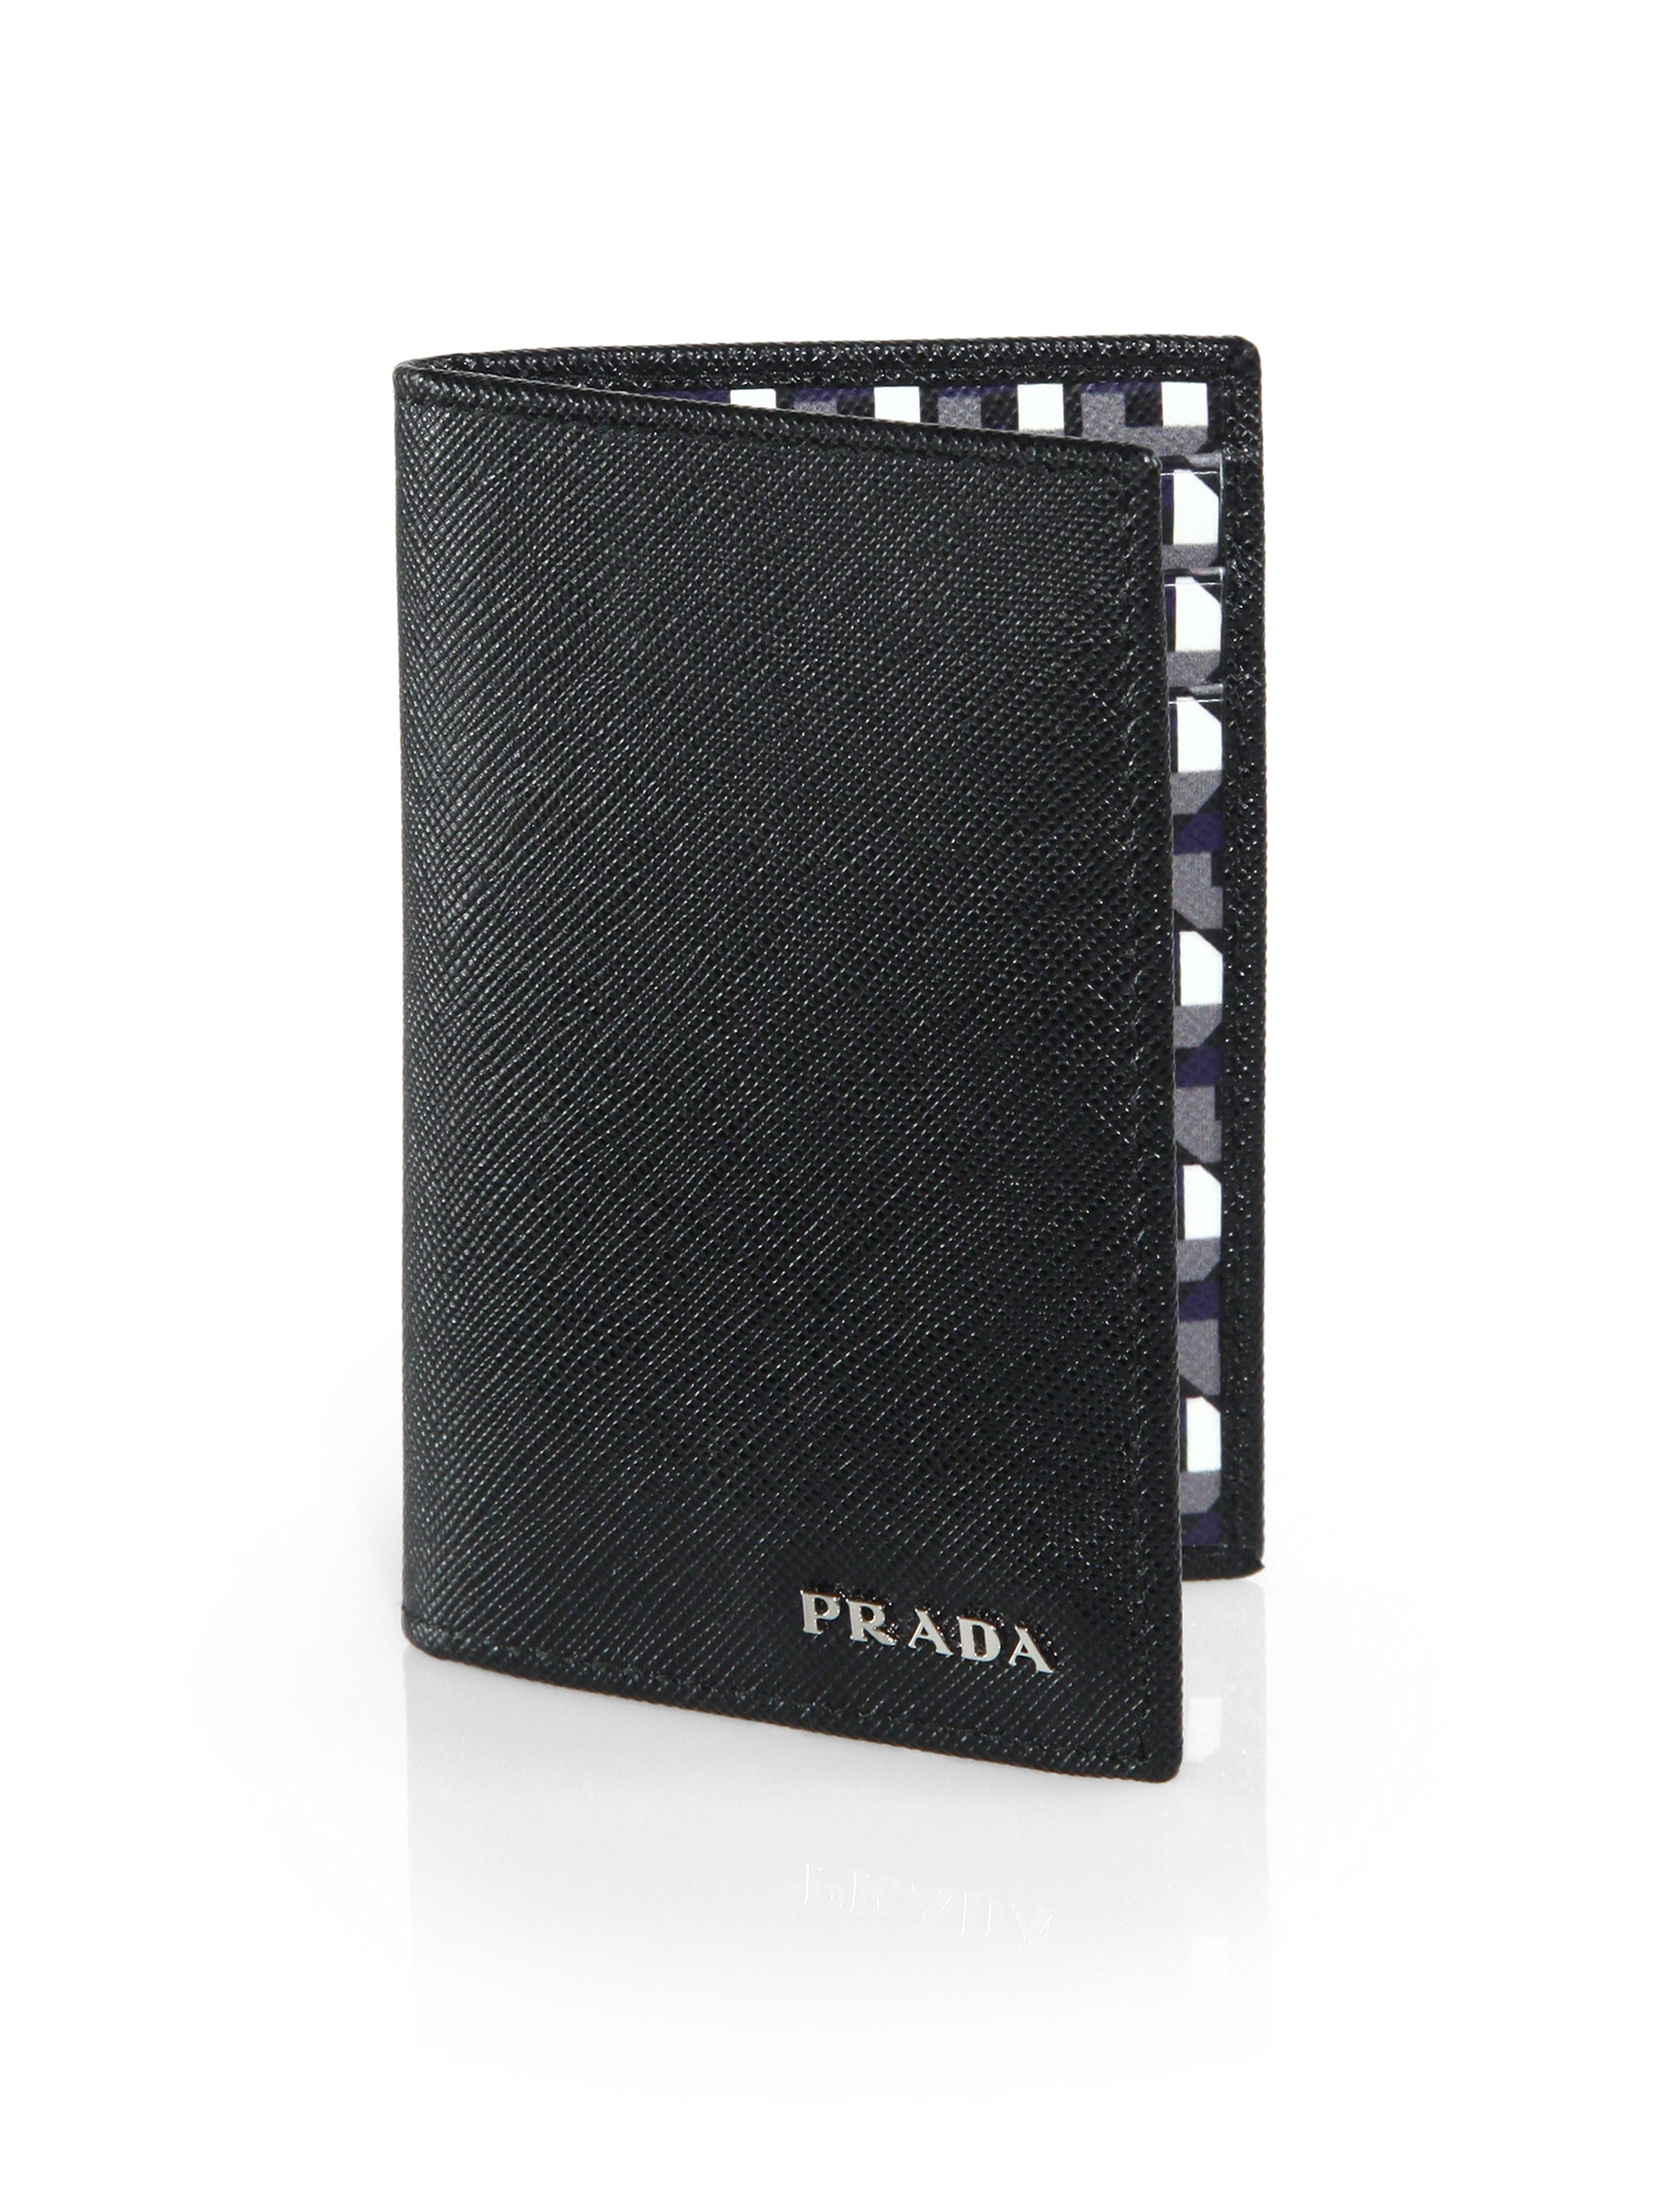 prada authentic handbags - prada uk wallet, prada leather bag men